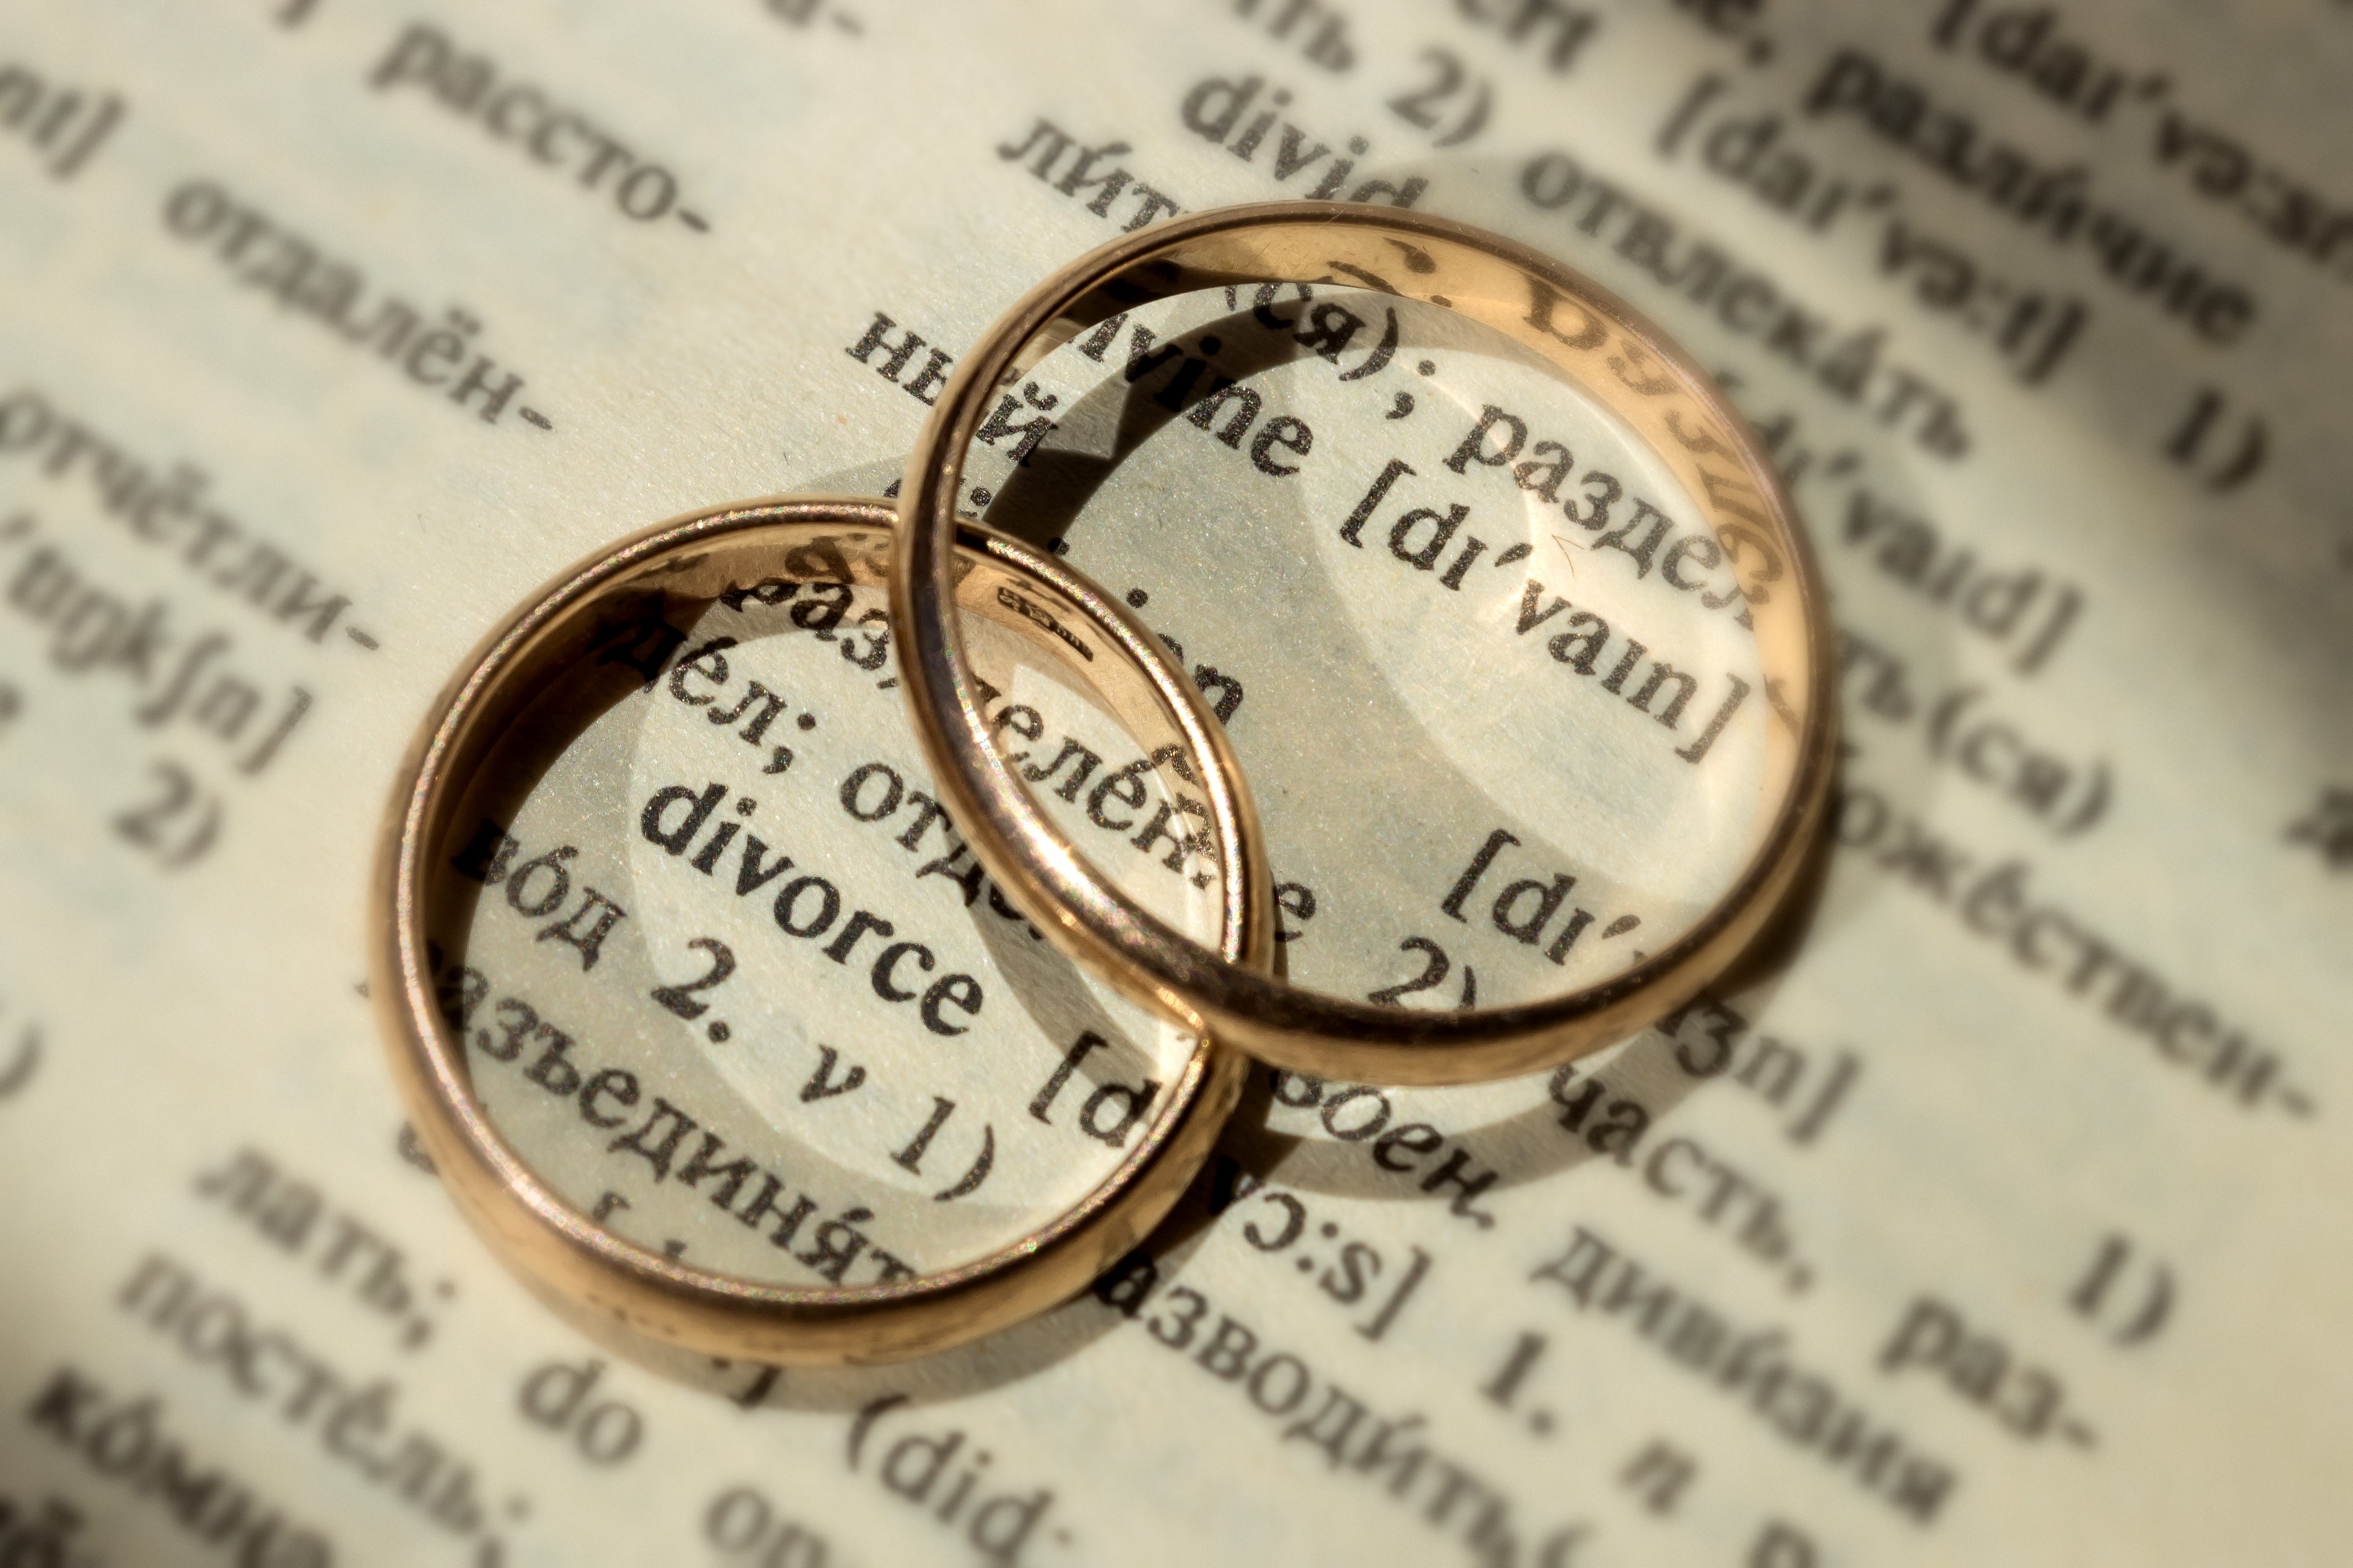 Two separate wedding rings next to the word